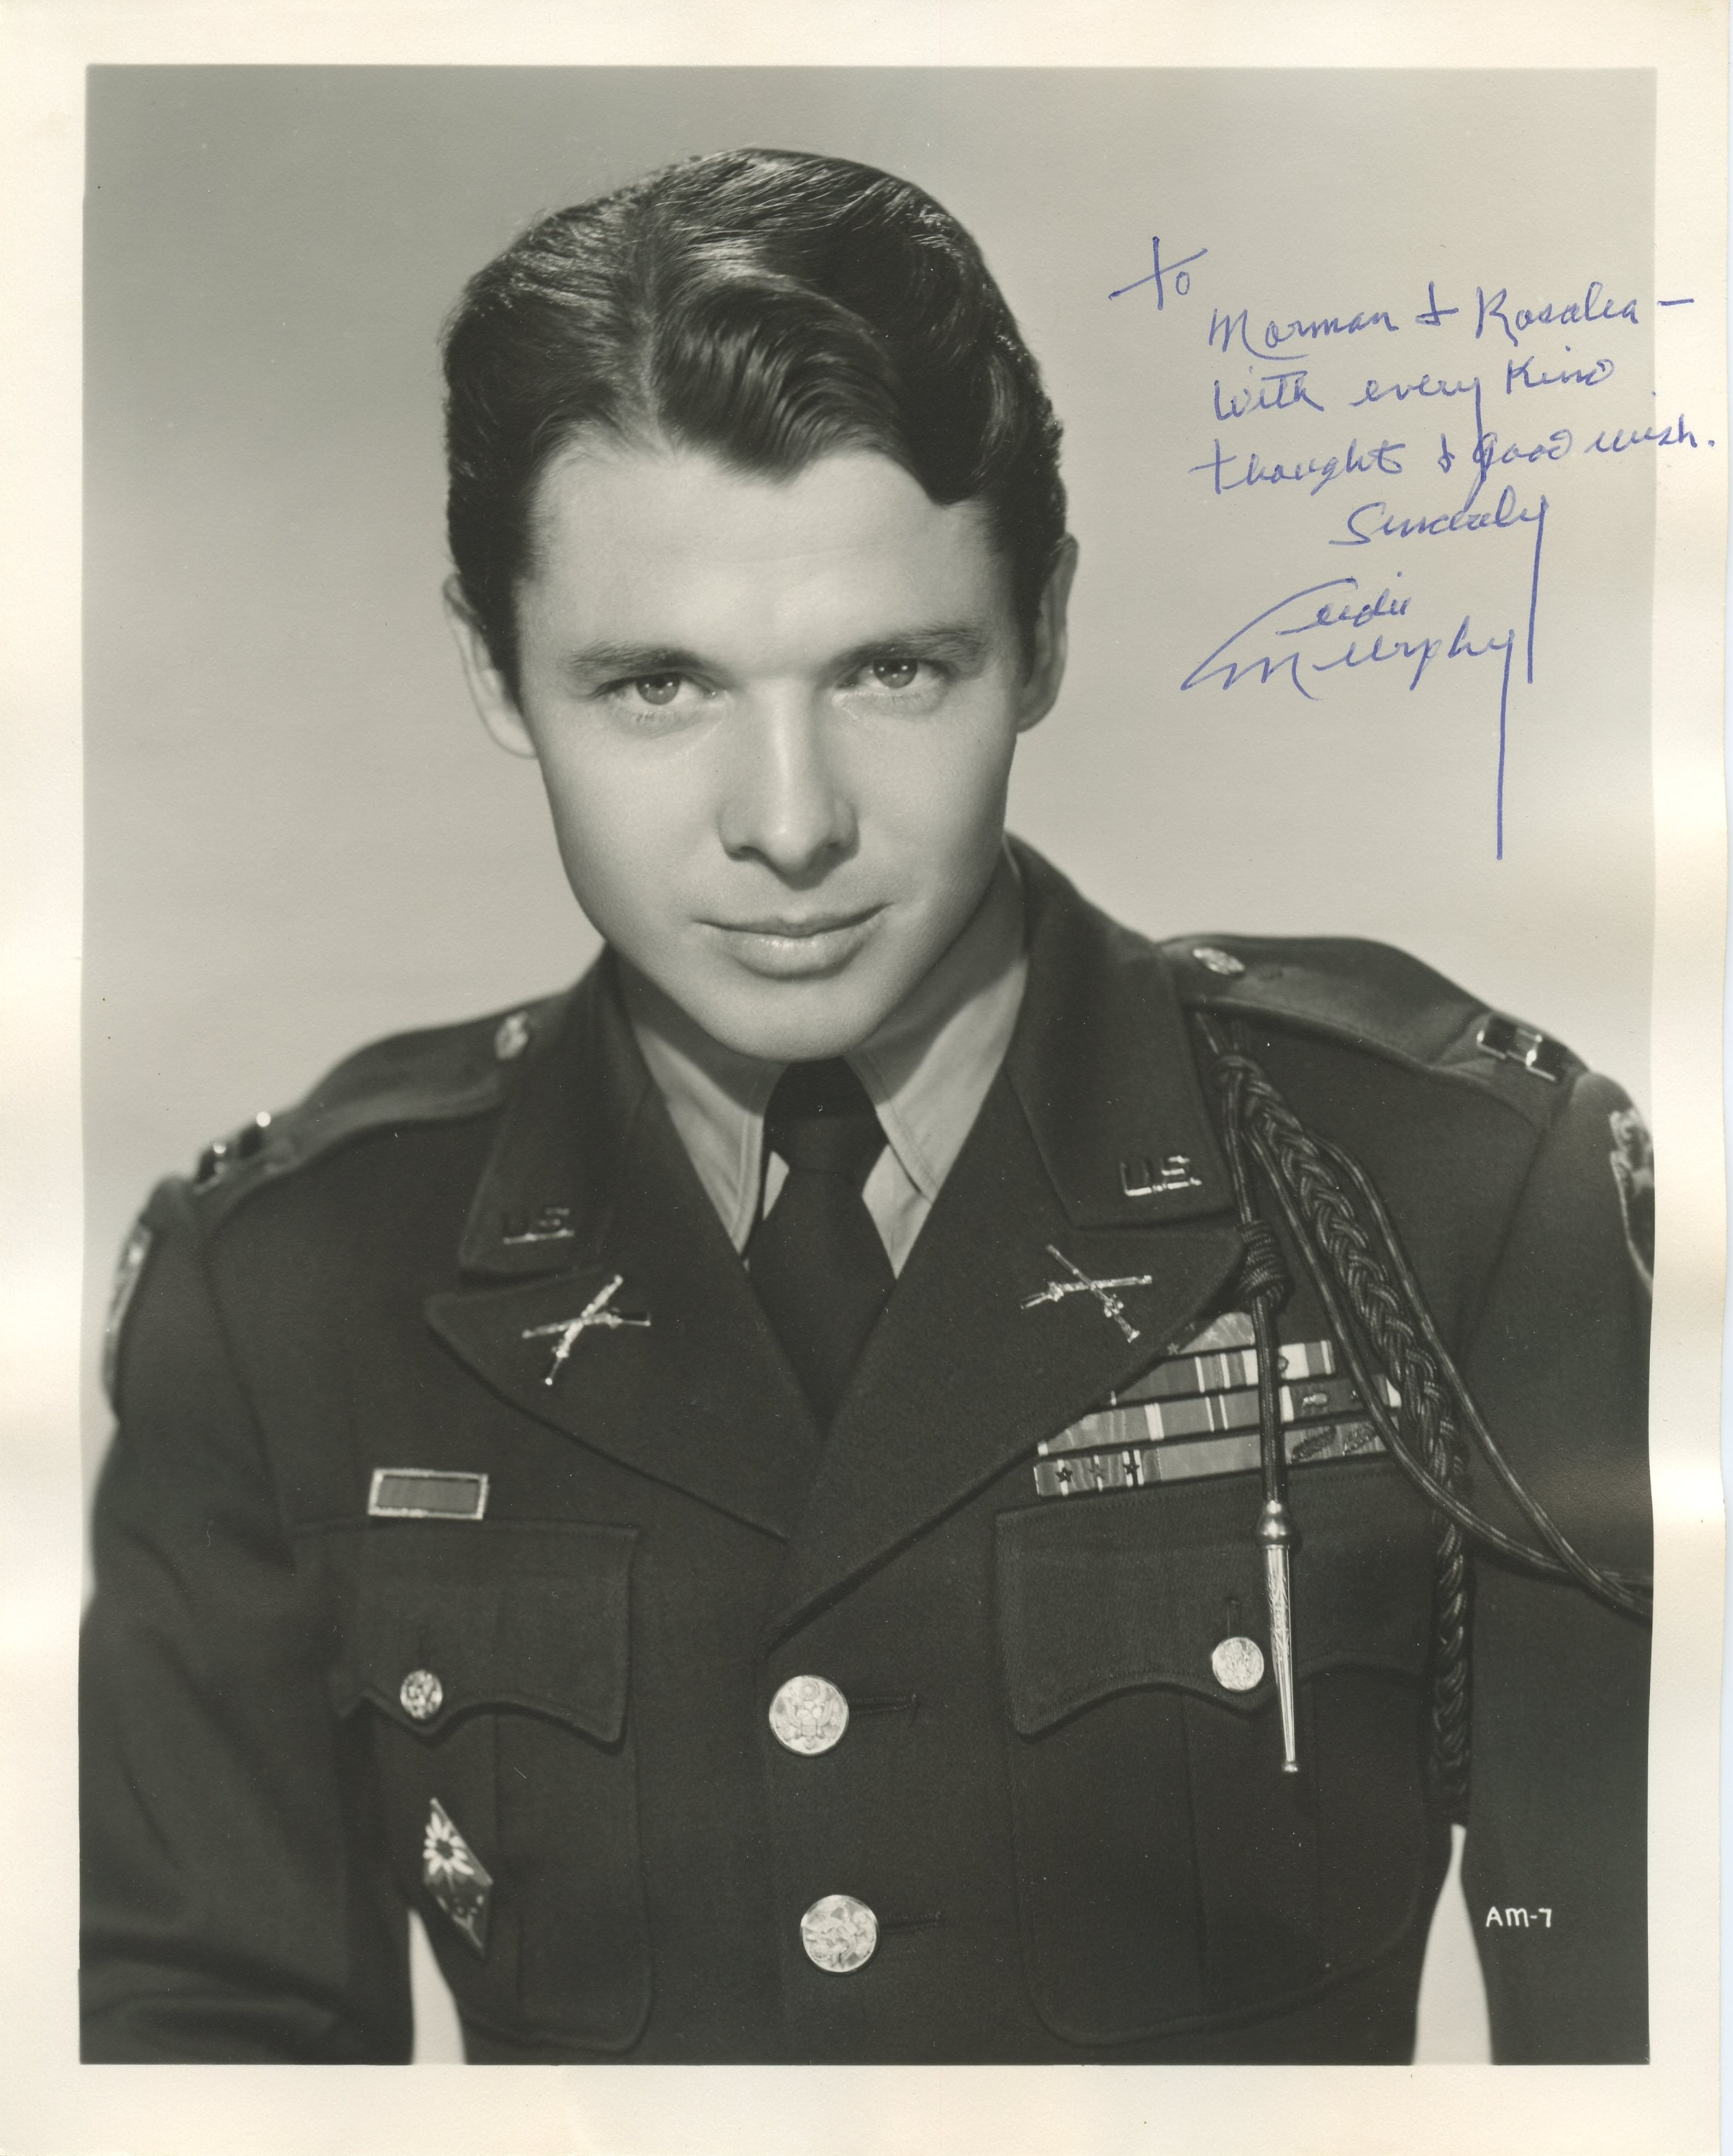 Audie Murphy Autograph Decidated To Norman And Rosalea